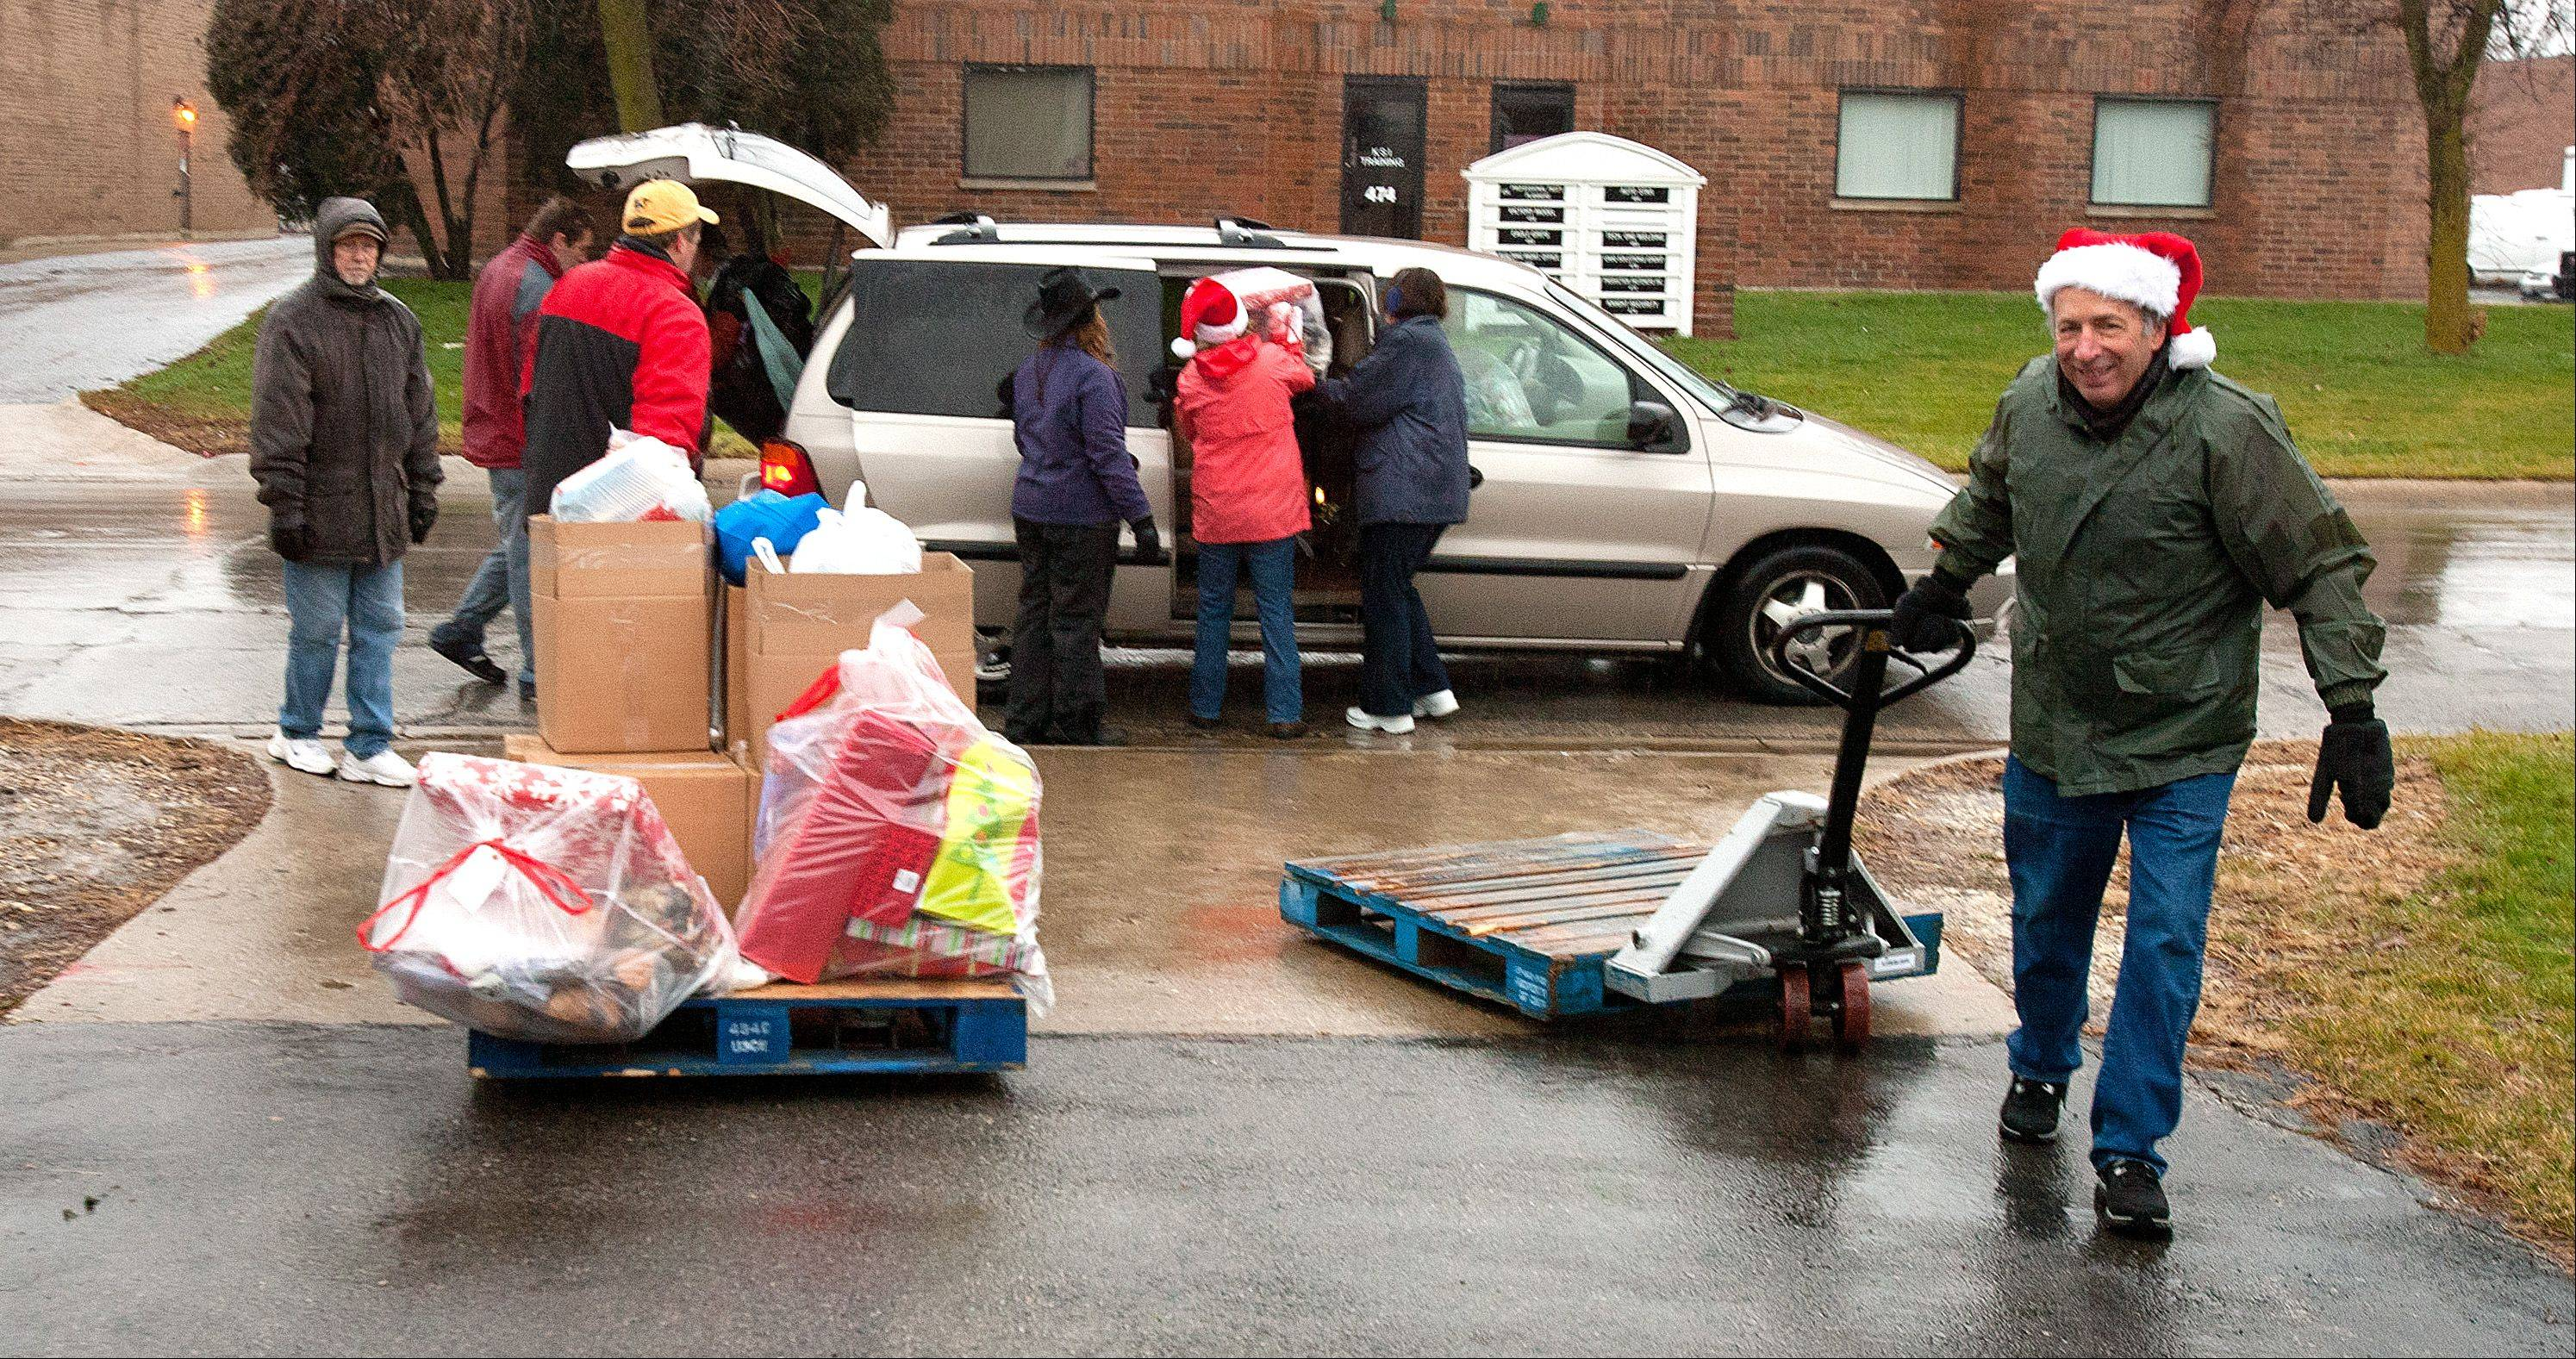 Mike Bolsoni, right, of Glen Ellyn, a member of Peace Lutheran Church in Lombard, loads presents as part of a Humanitarian Service Project.